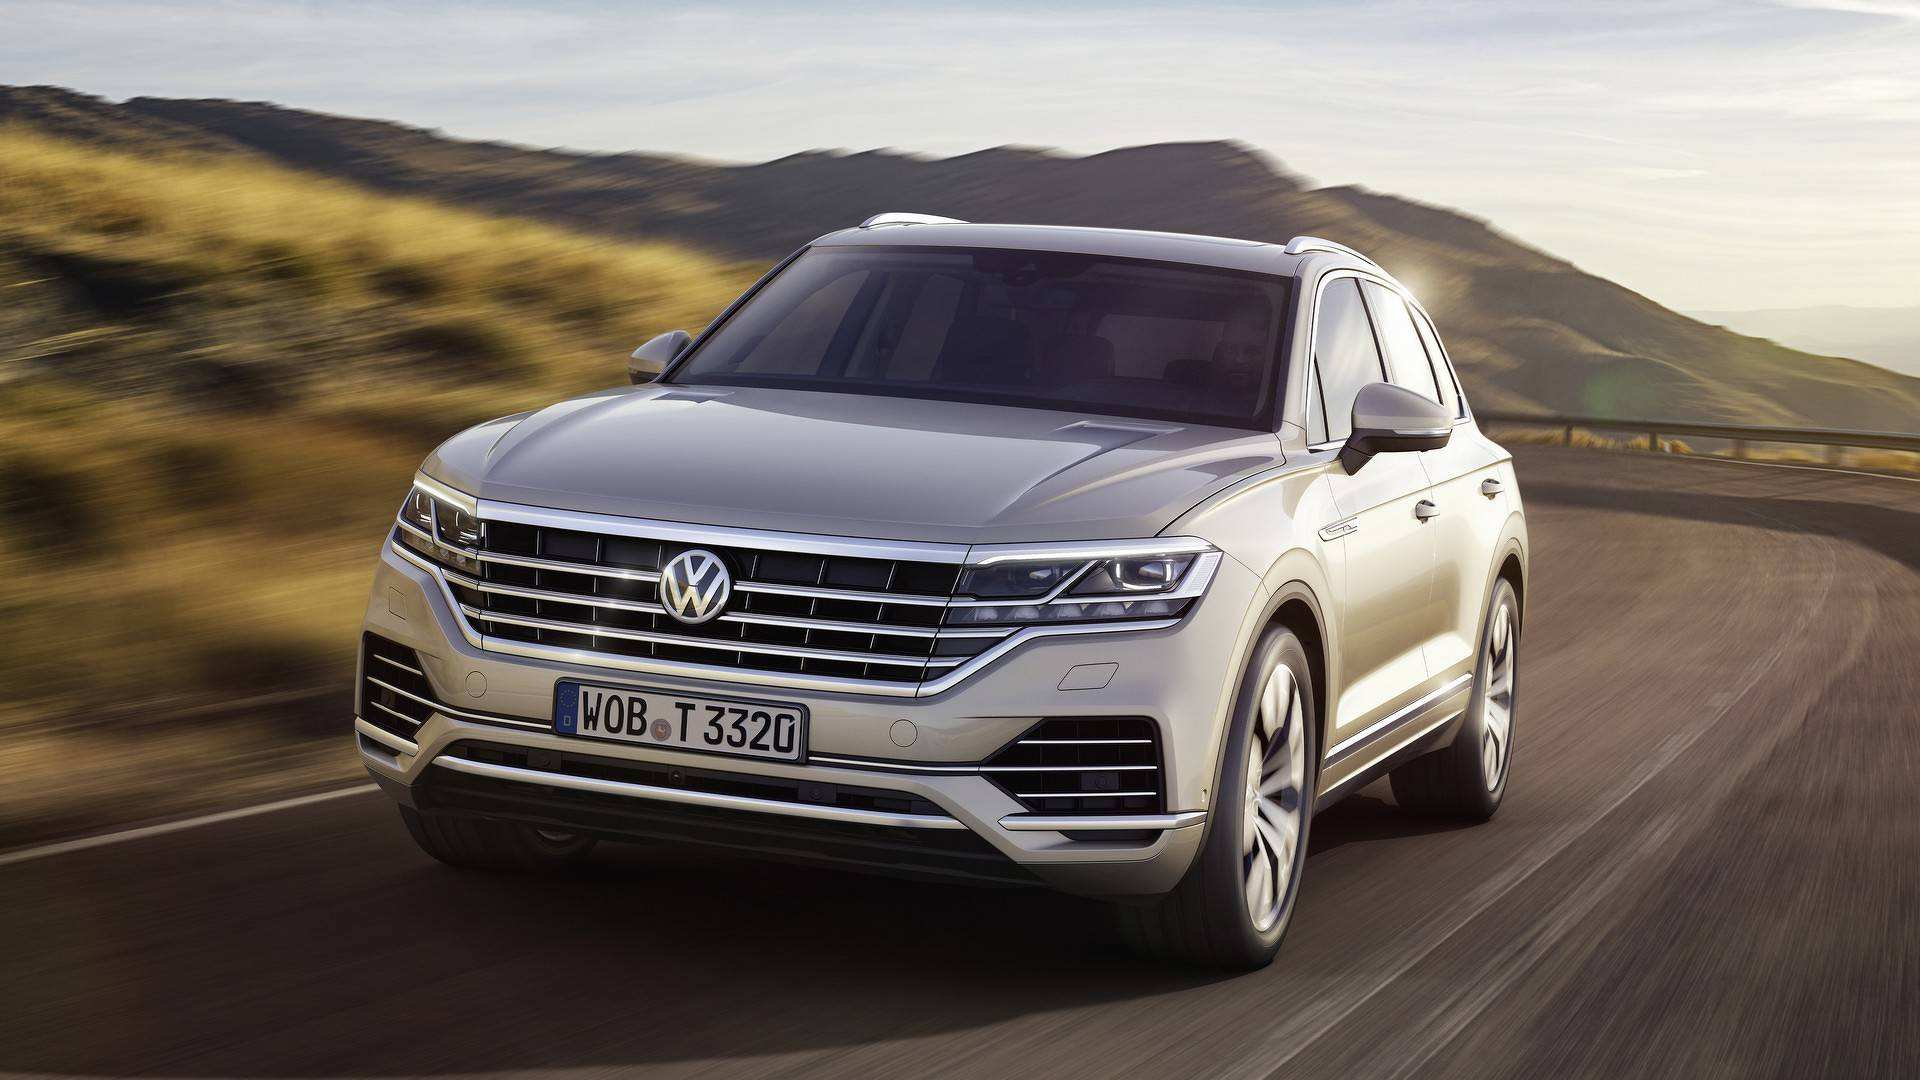 21 Best 2019 Vw Touareg Tdi Picture